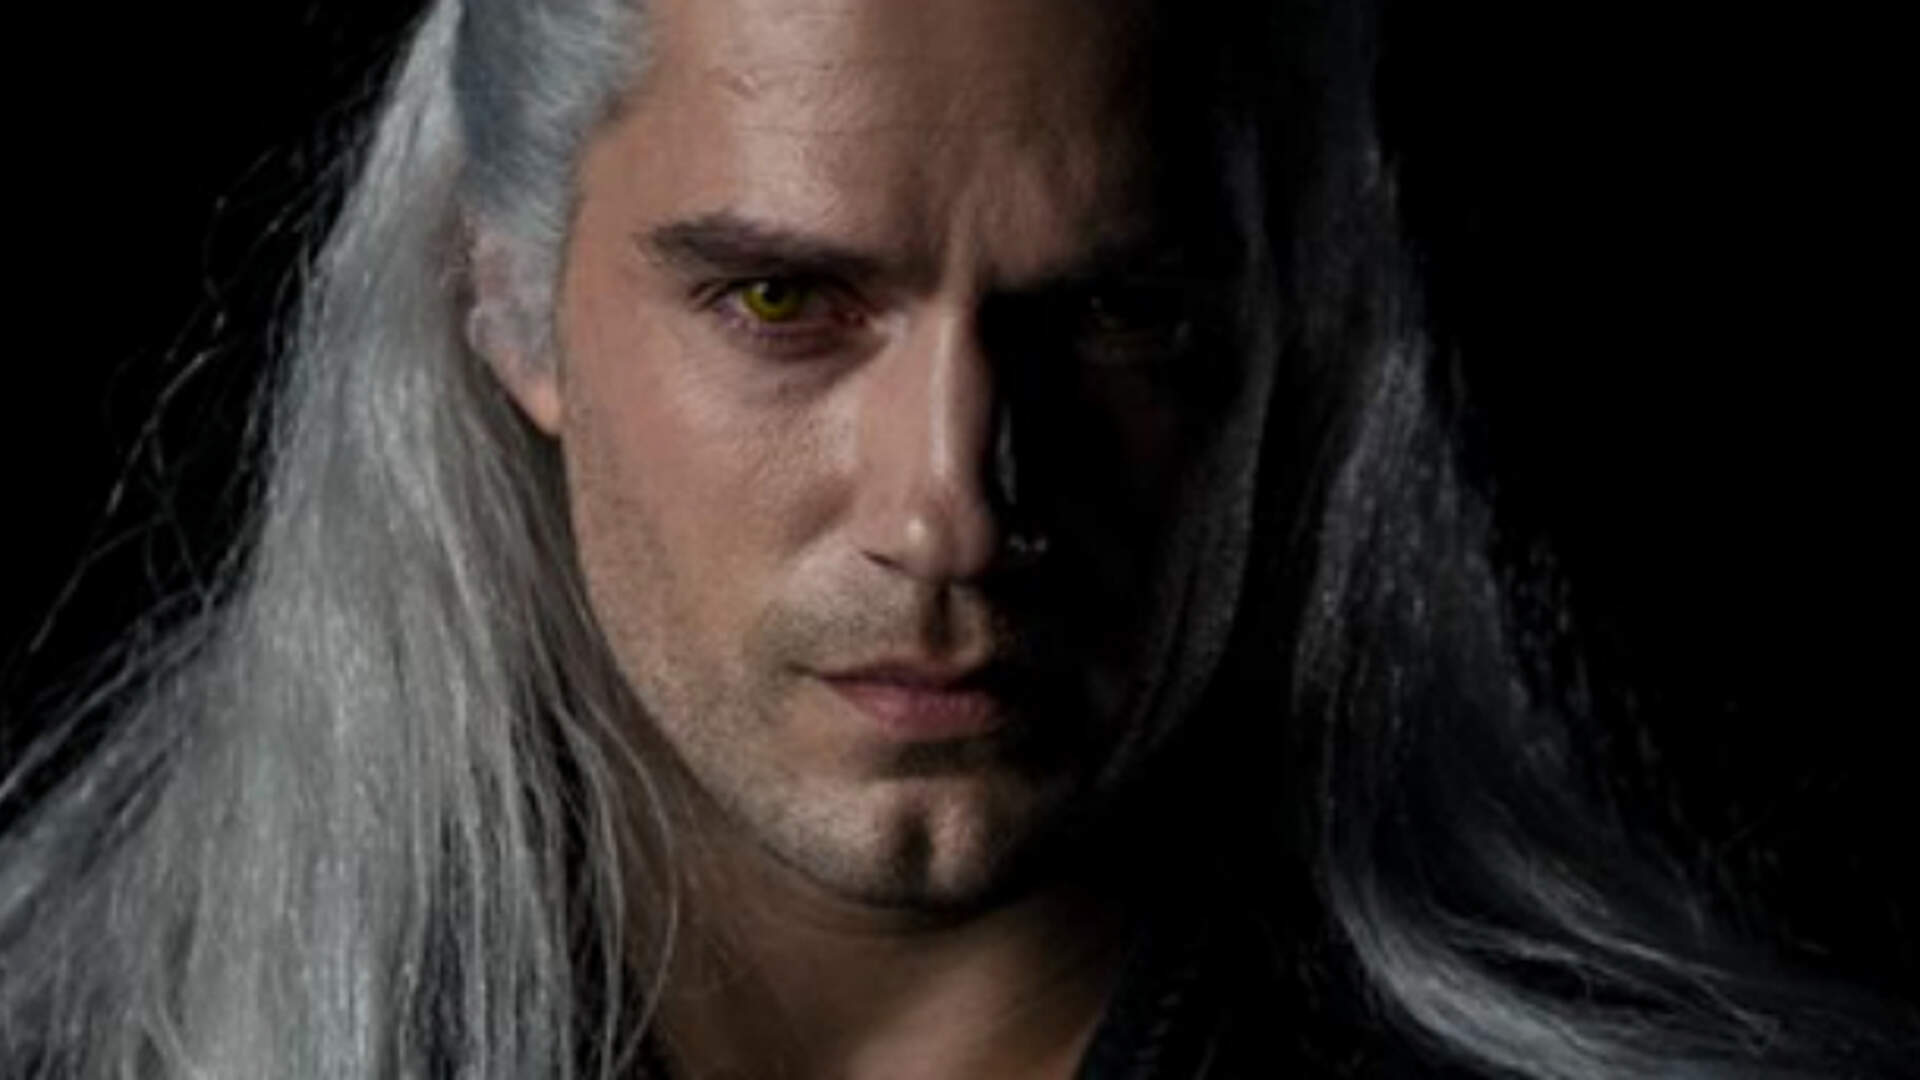 No, This Is Really Henry Cavill as Geralt in The Witcher for Netflix, Not a Halloween Costume